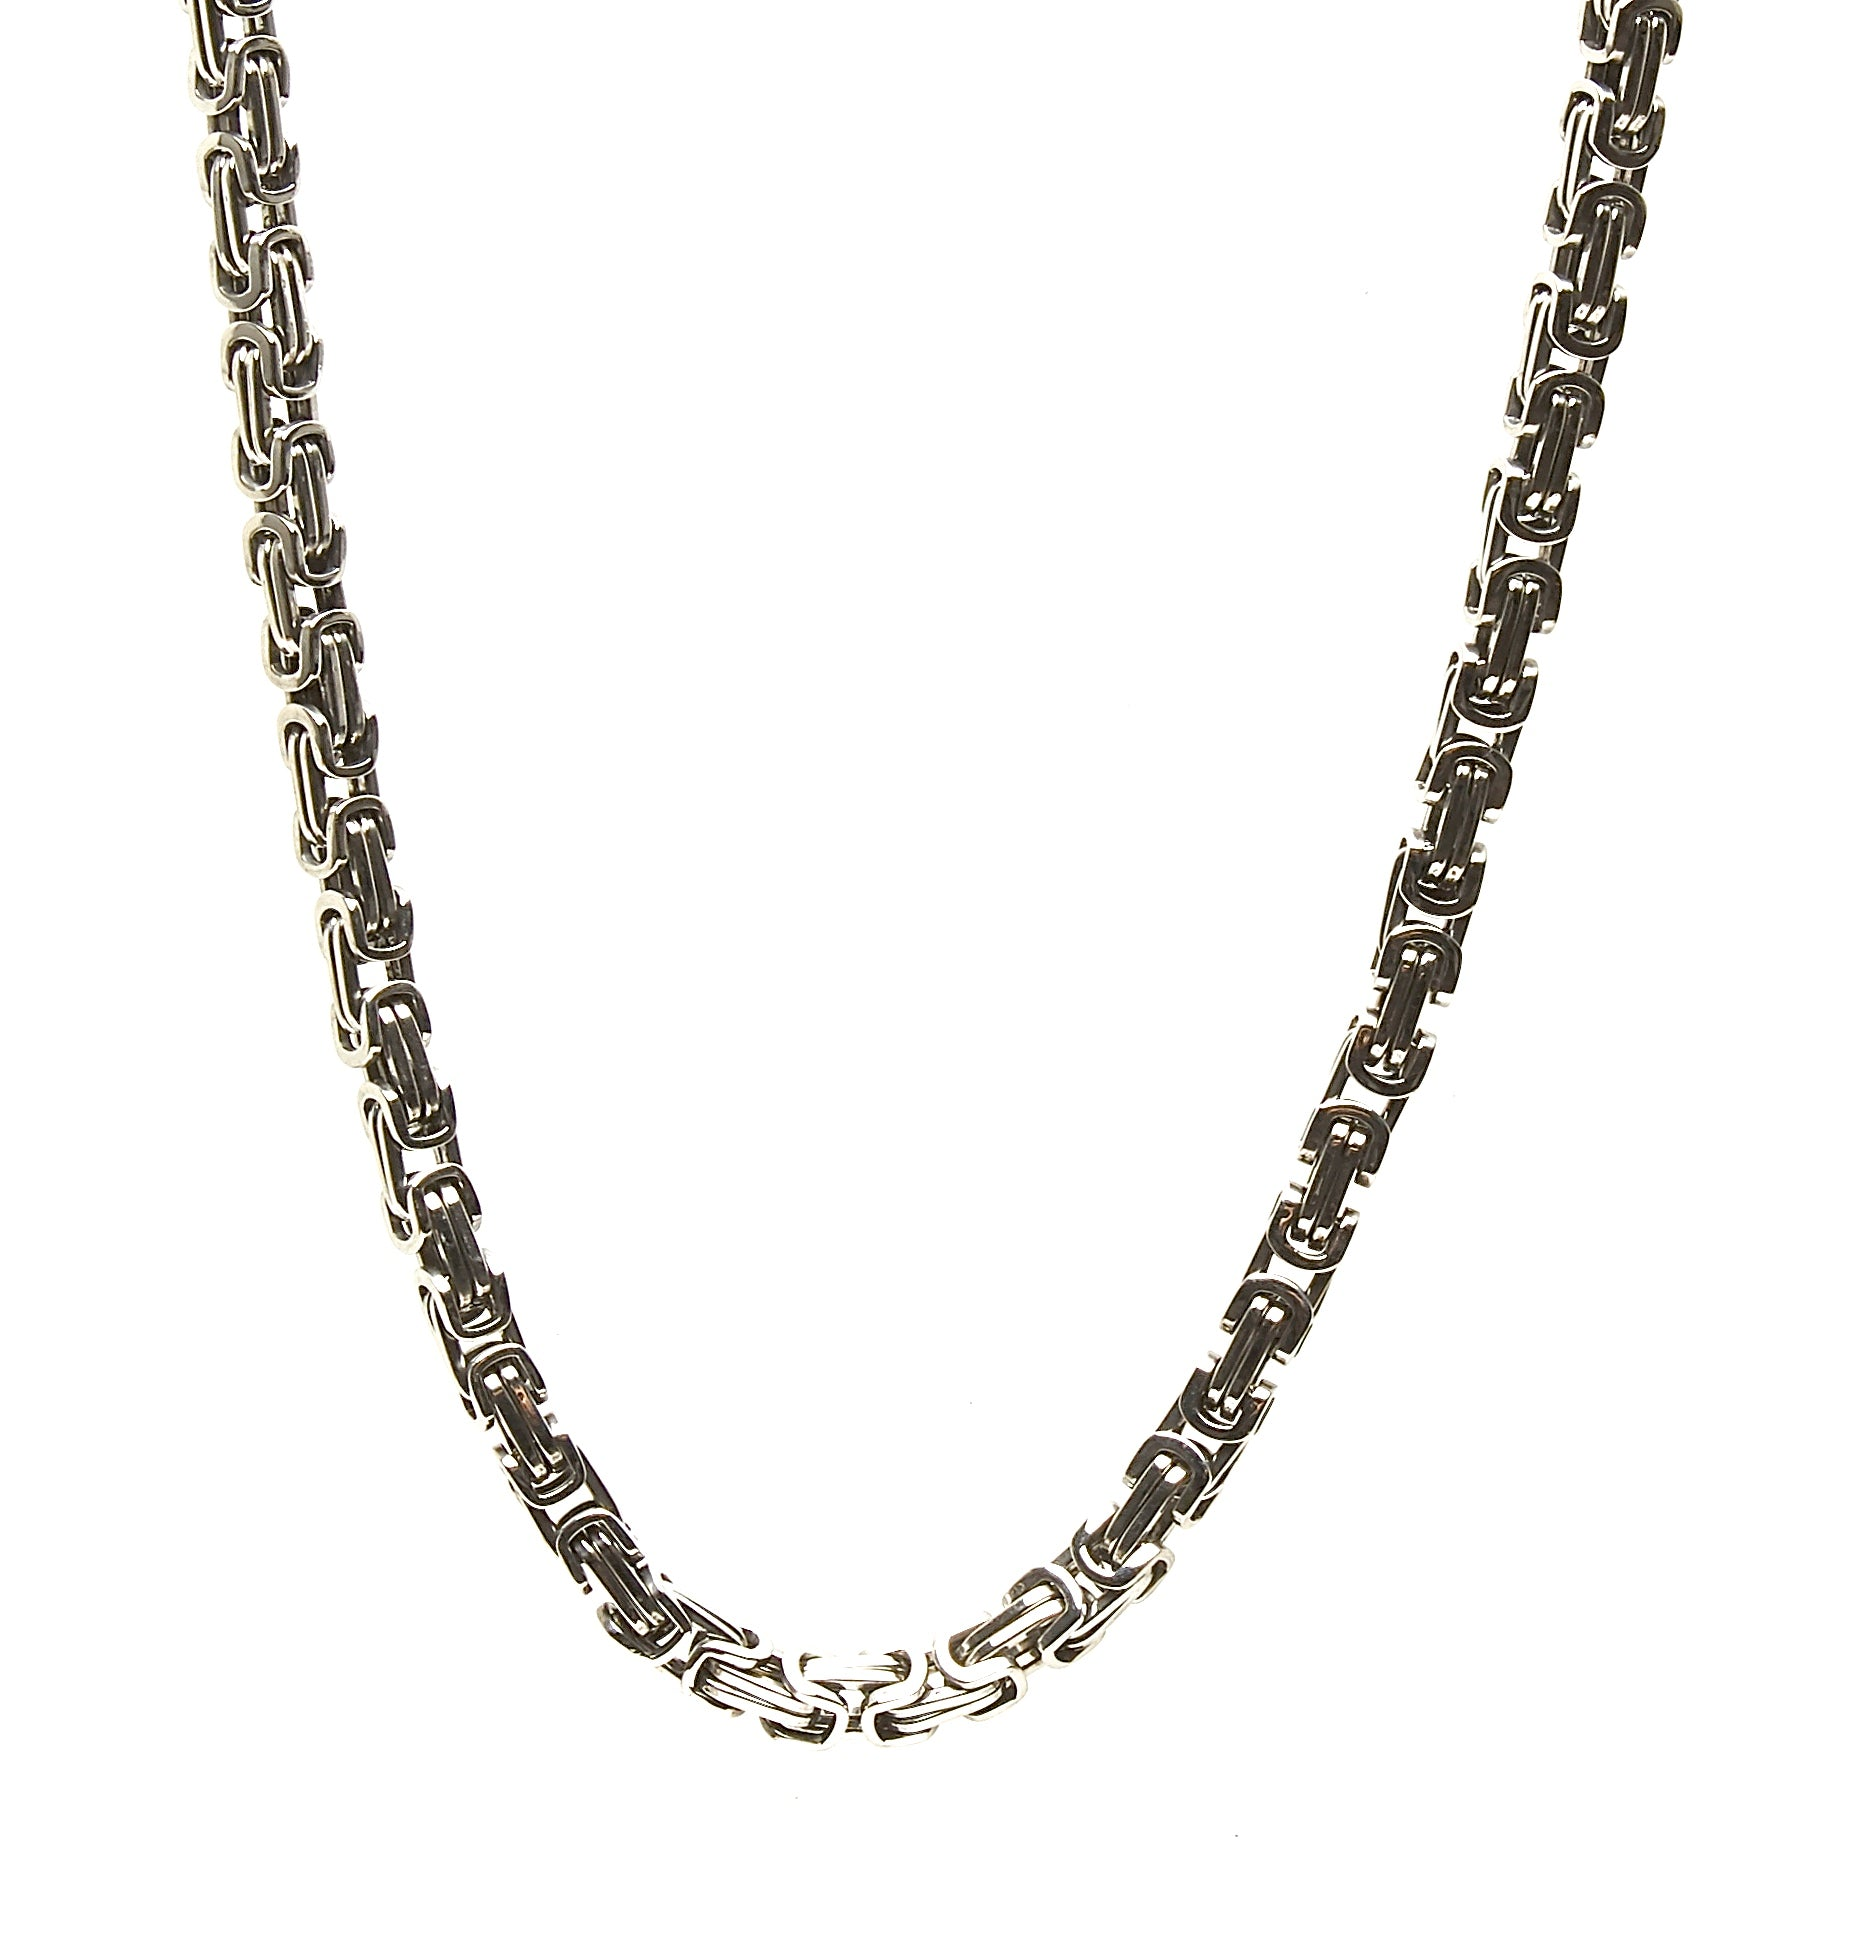 HEAVY STAINLESS STEEL CHAIN BY NYET JEWELRY